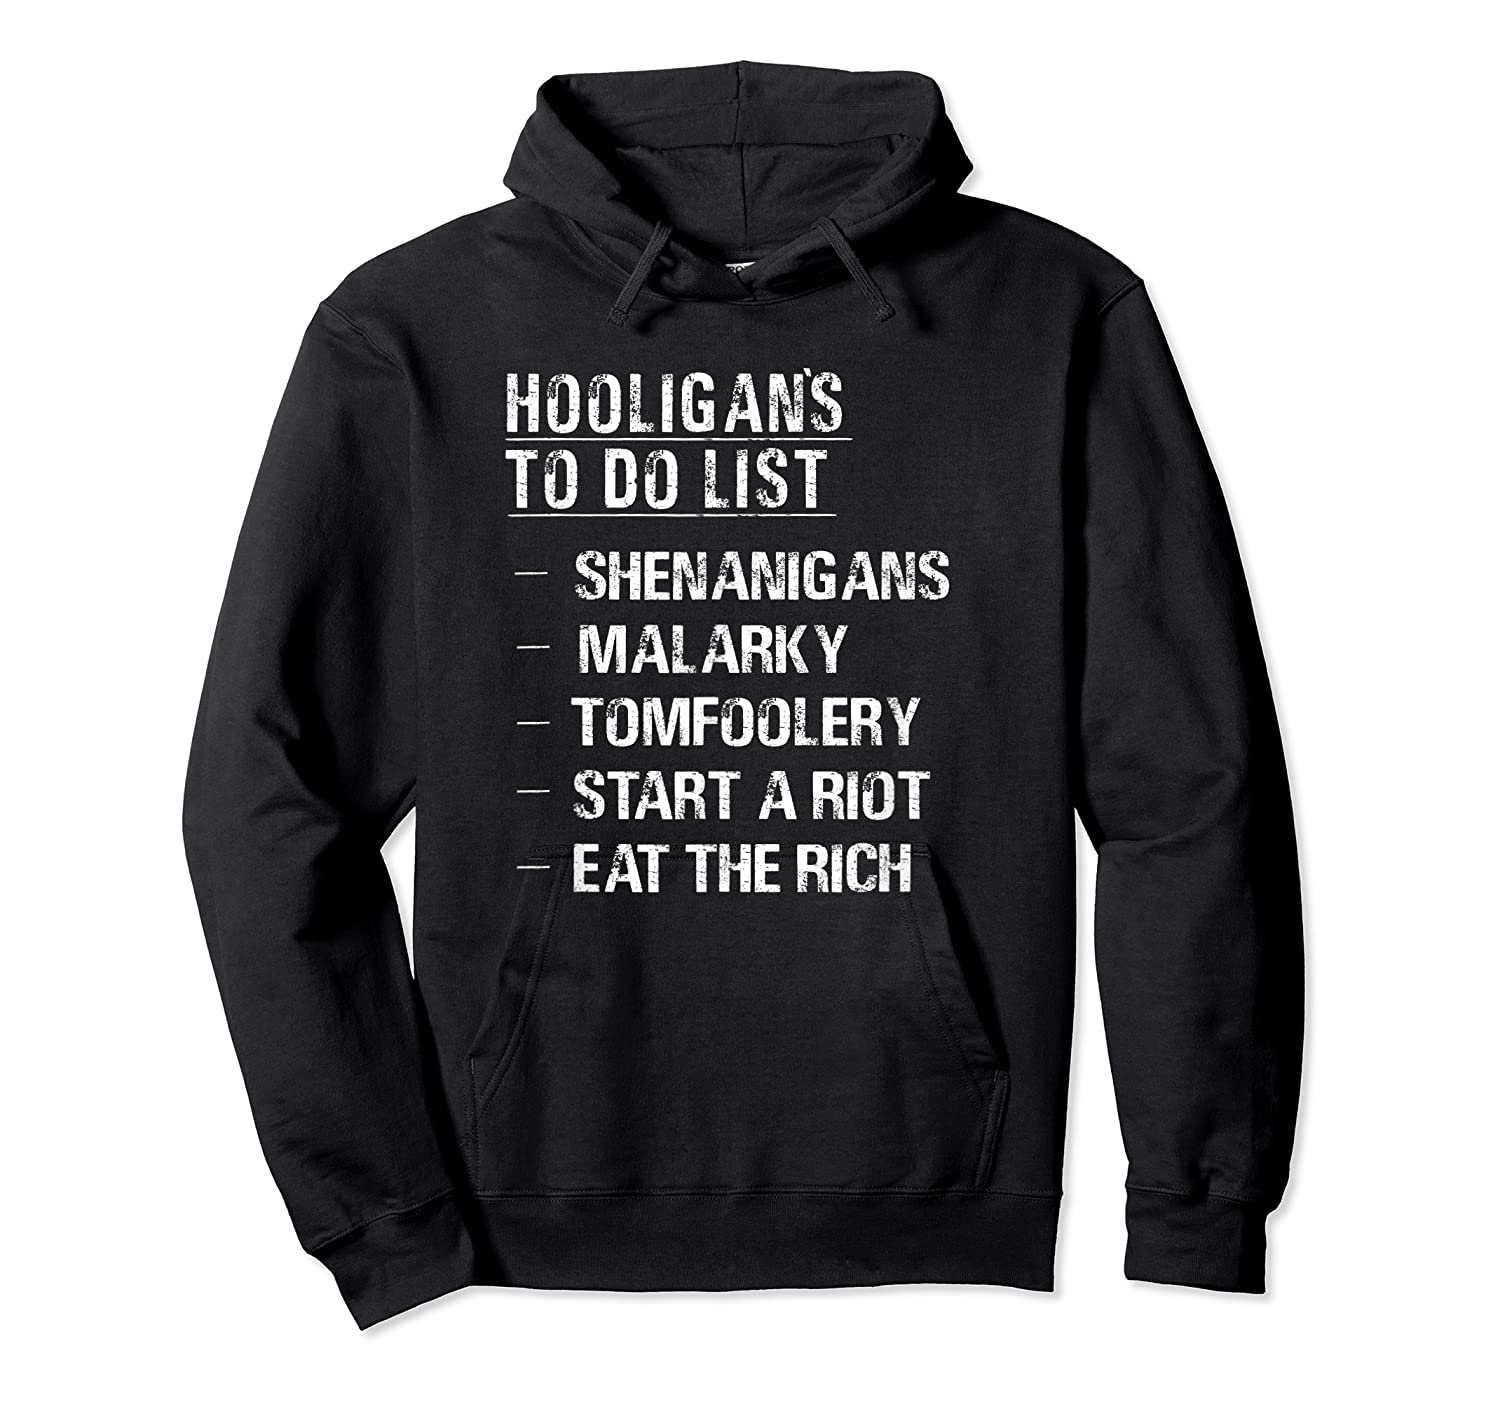 Shenanigans Eat The Rich St Pattys Day Hooligans To Do Shirt Unisex Pullover Hoodie